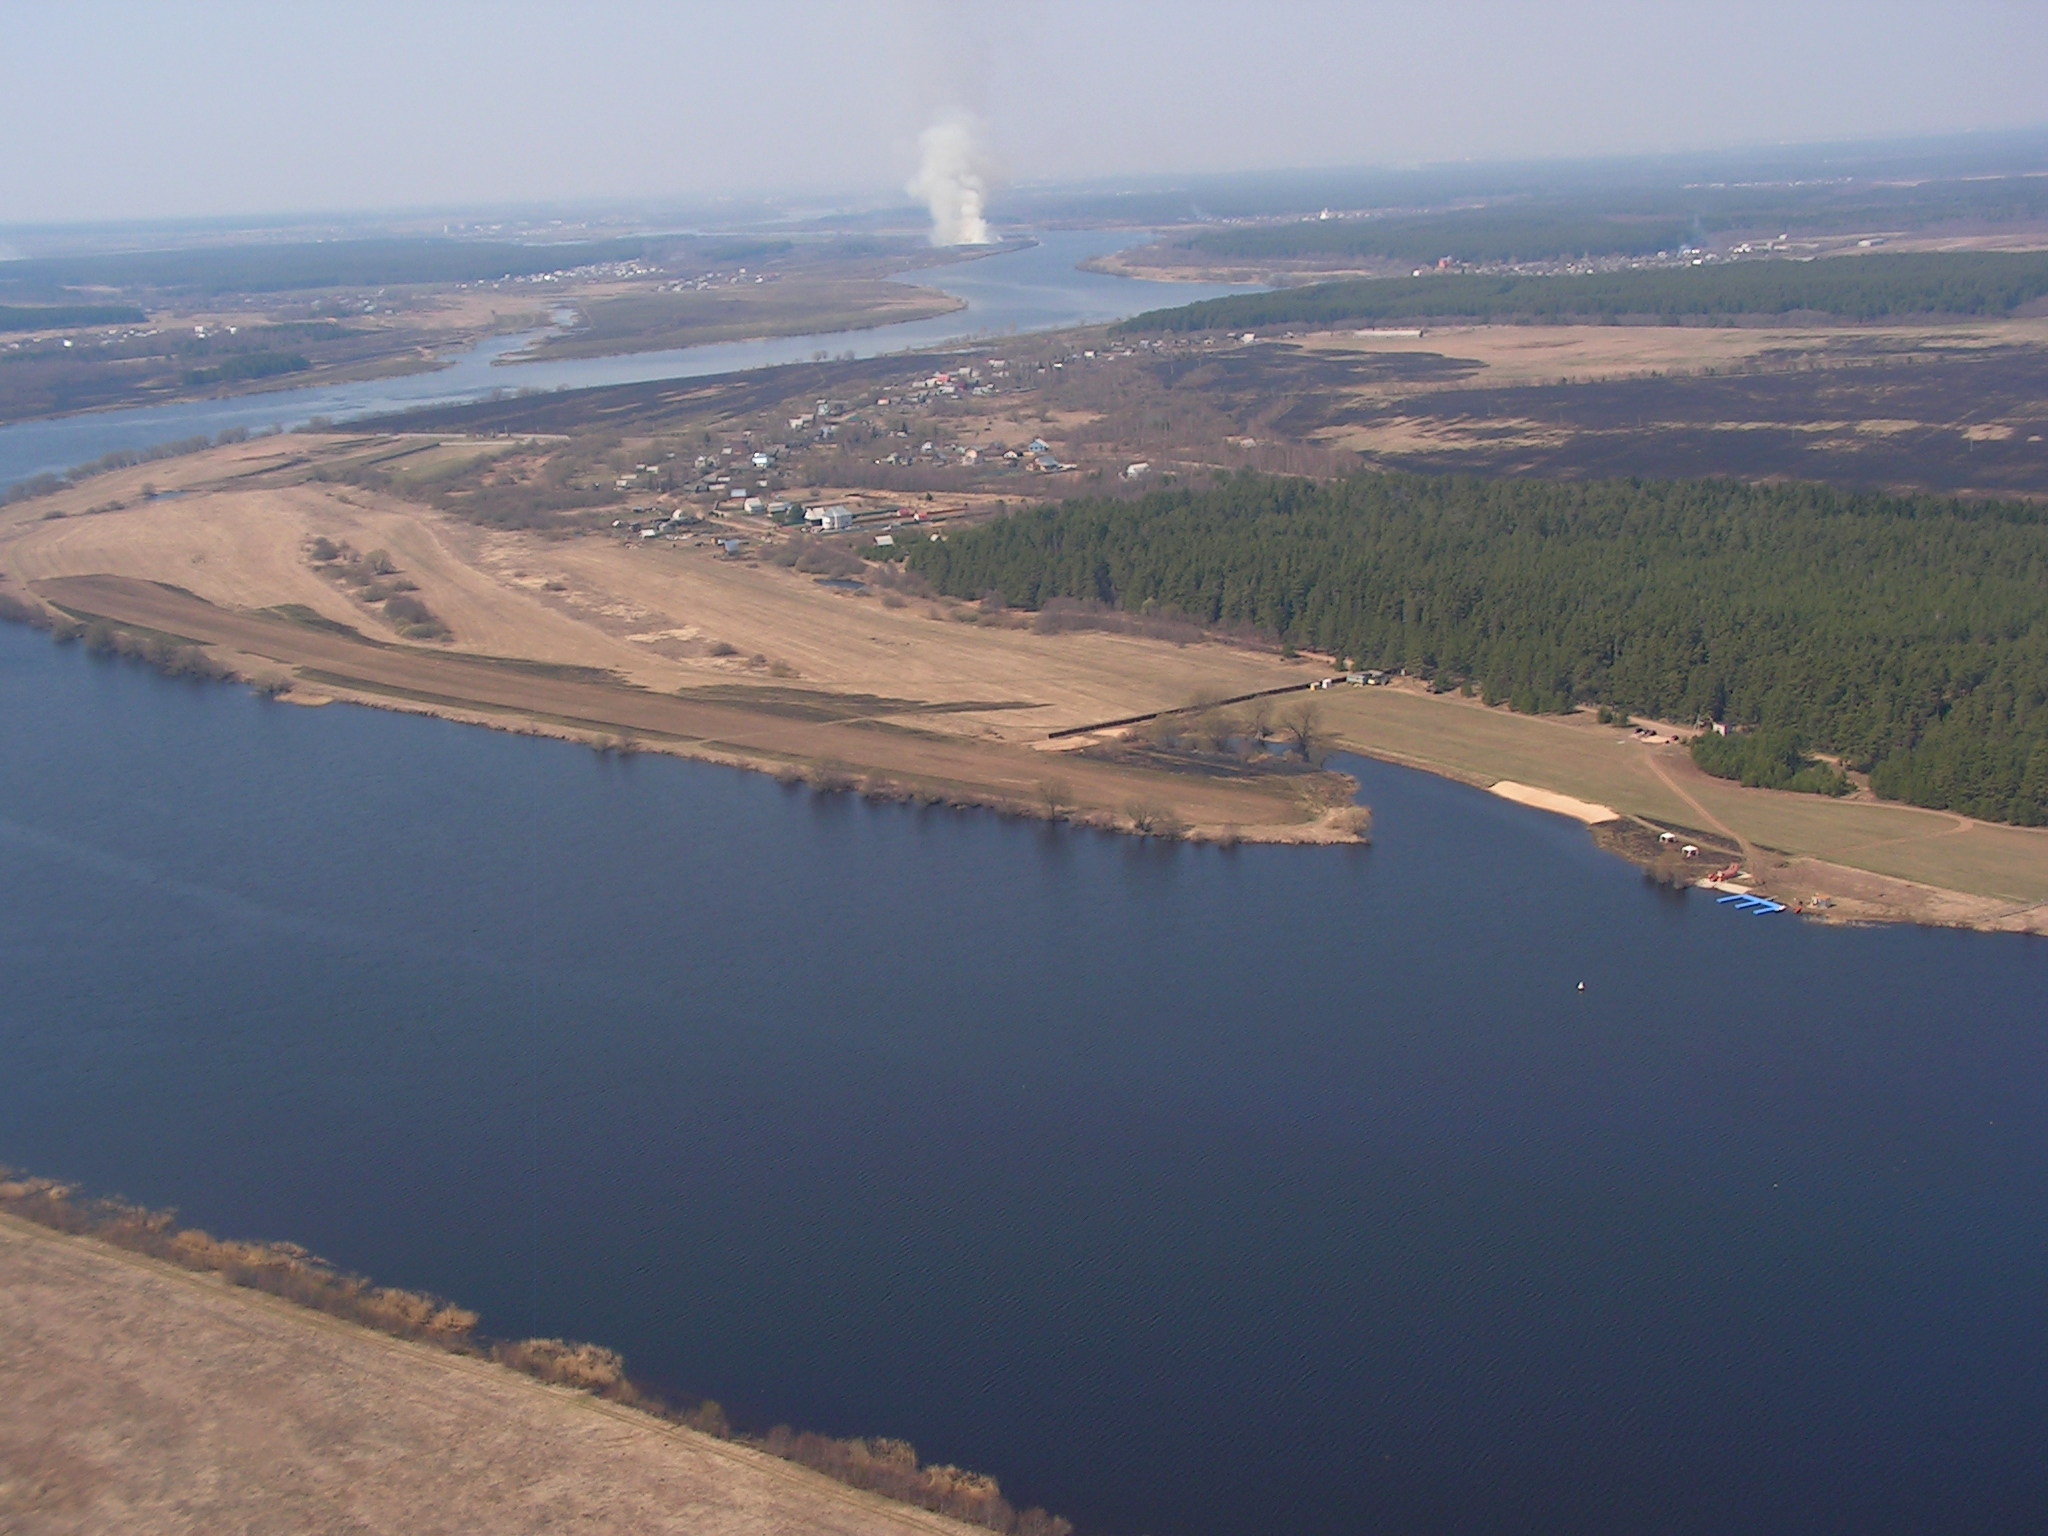 File:Volga River in Tver Oblast.jpg - Wikimedia Commons